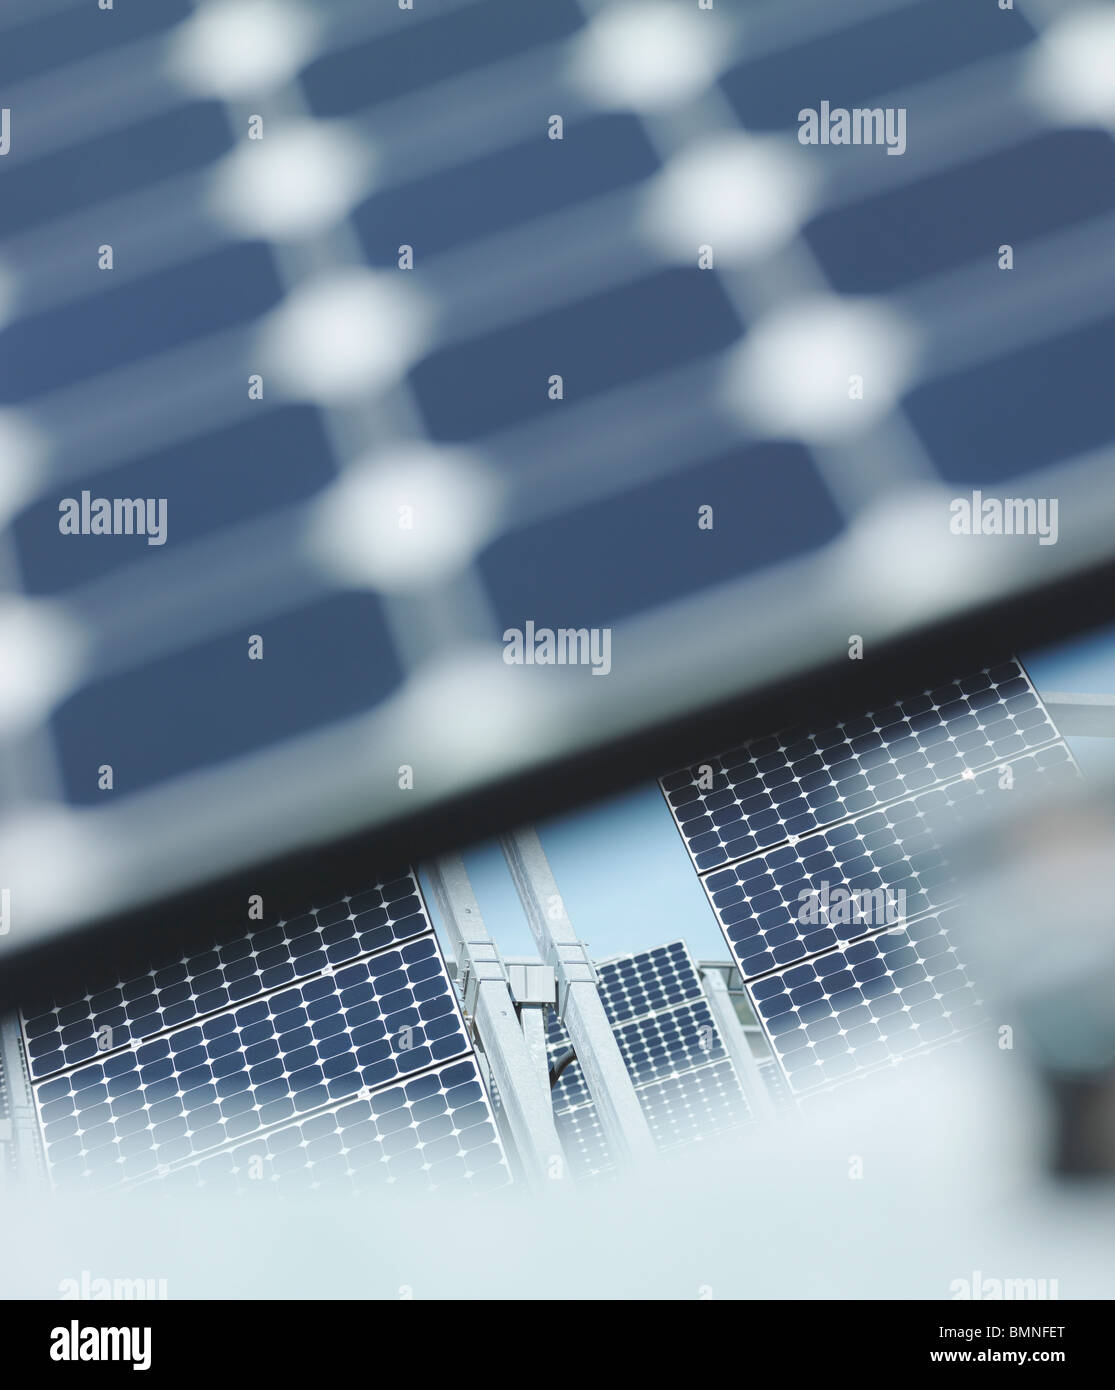 Solar power station out of focus panel - Stock Image